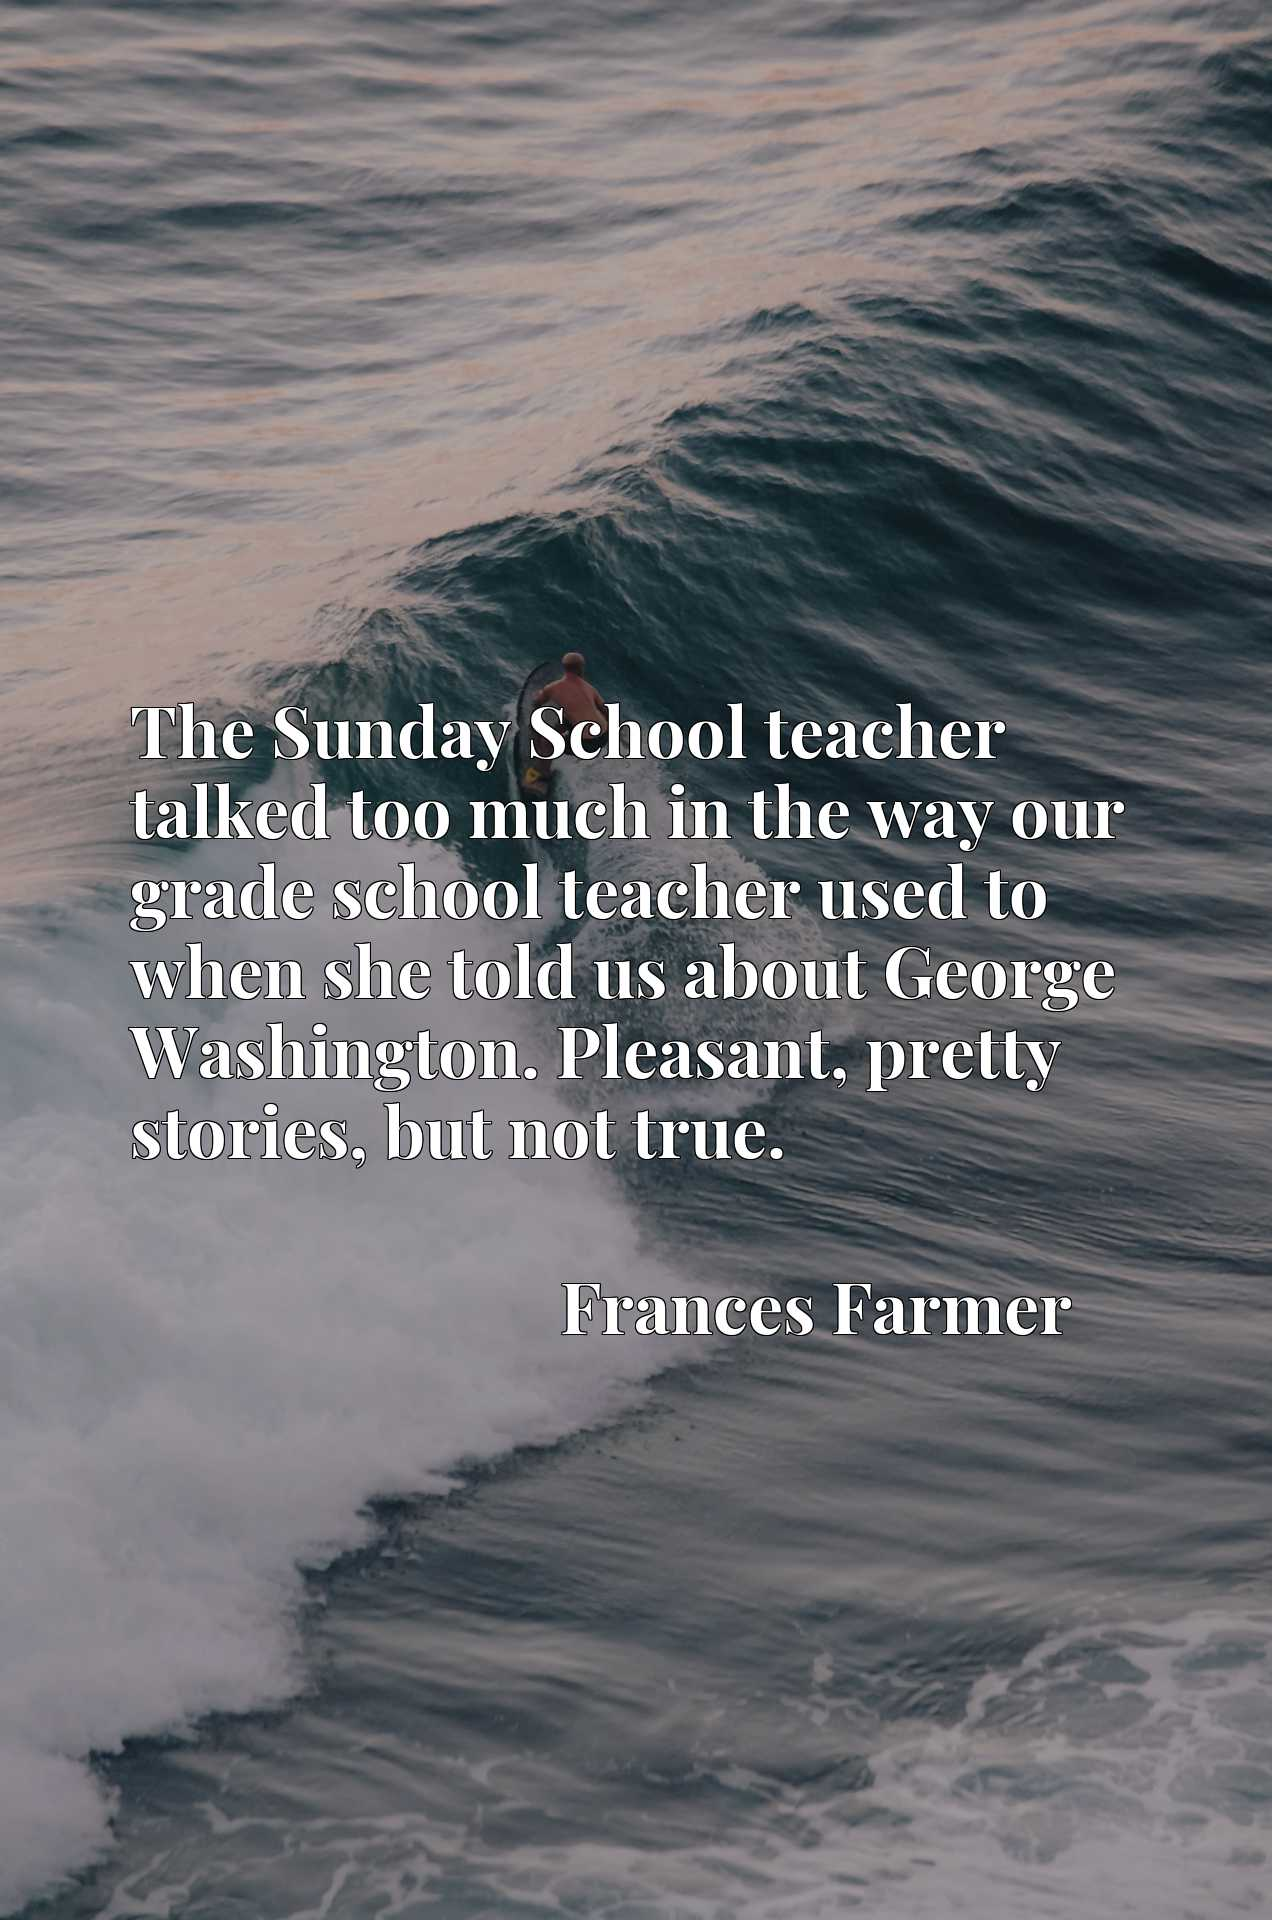 The Sunday School teacher talked too much in the way our grade school teacher used to when she told us about George Washington. Pleasant, pretty stories, but not true.